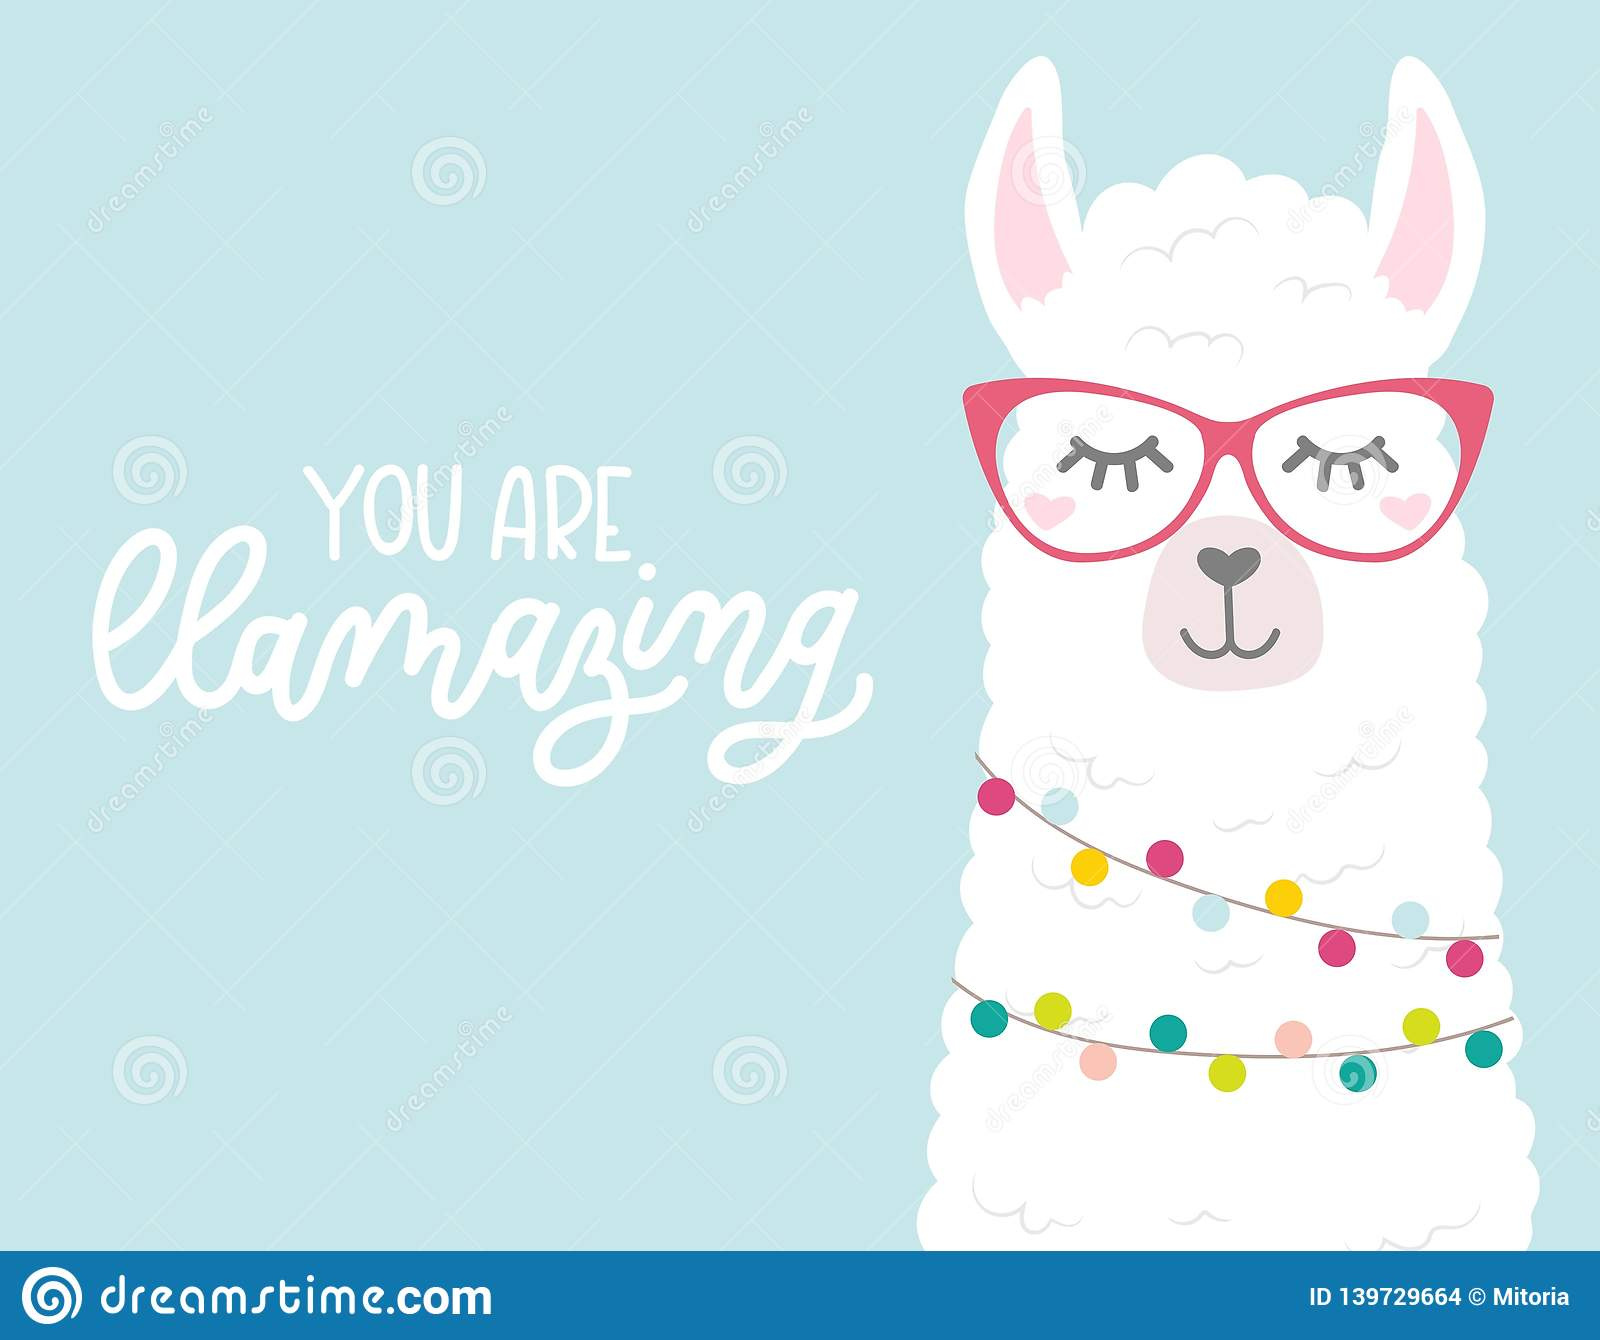 Cute Illustration With Llamas In Love Doodles And